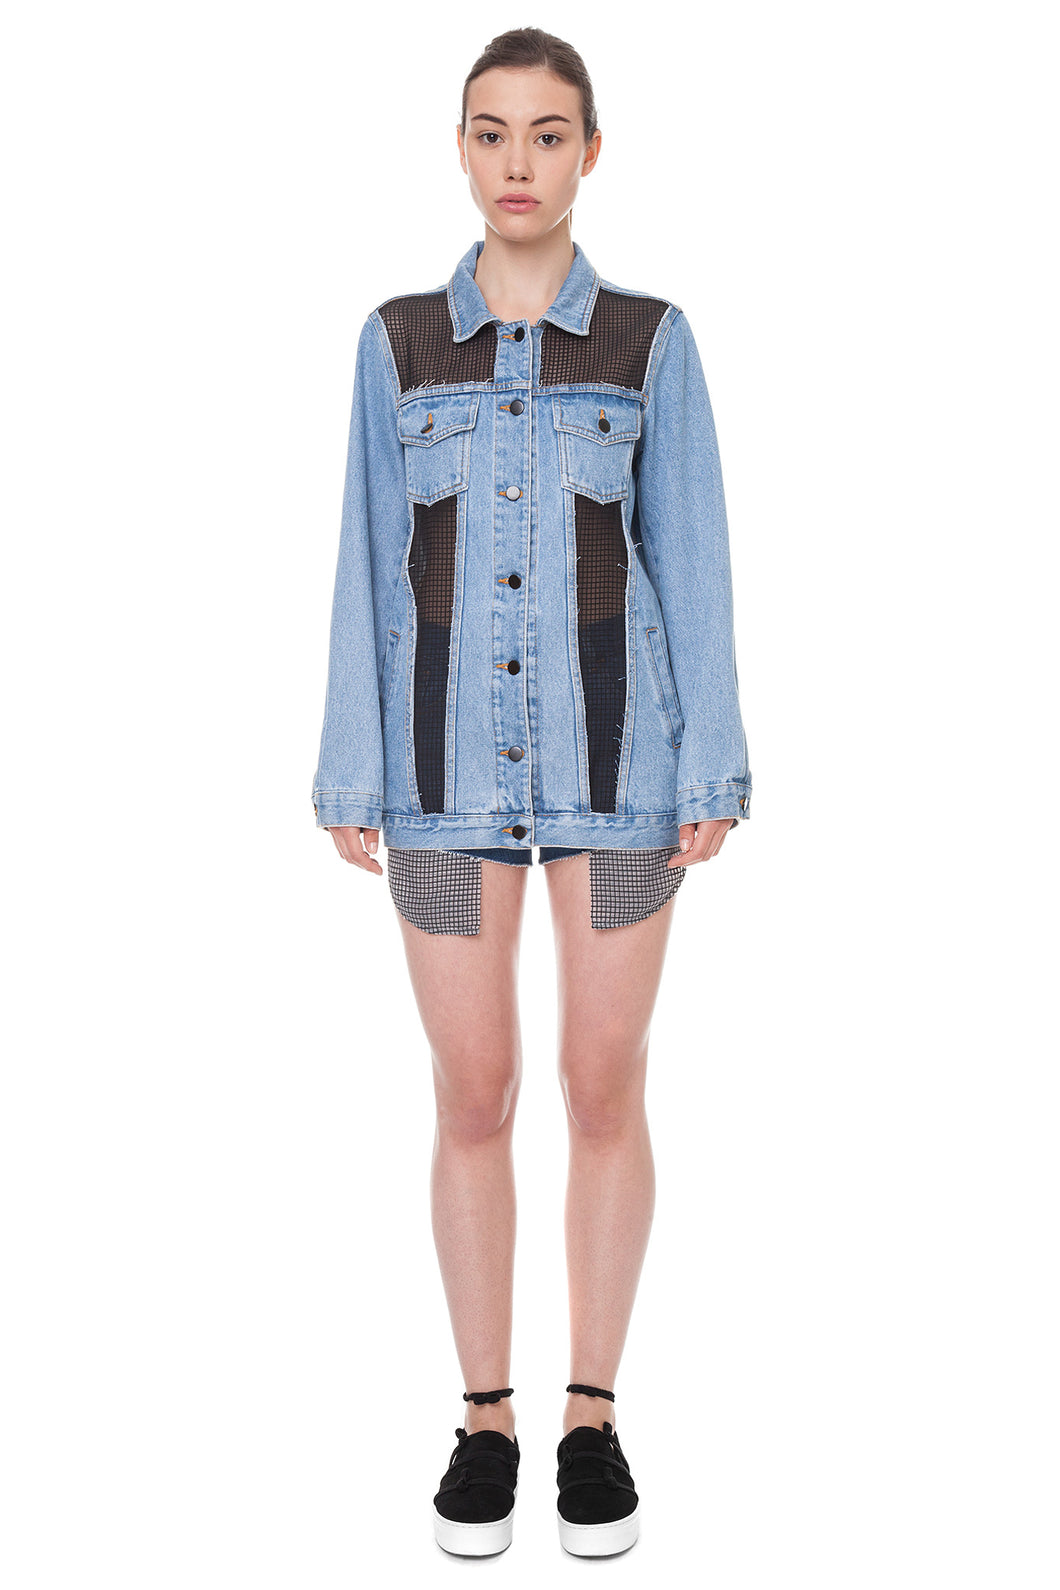 Jeans jacket with black inserts - Anna K